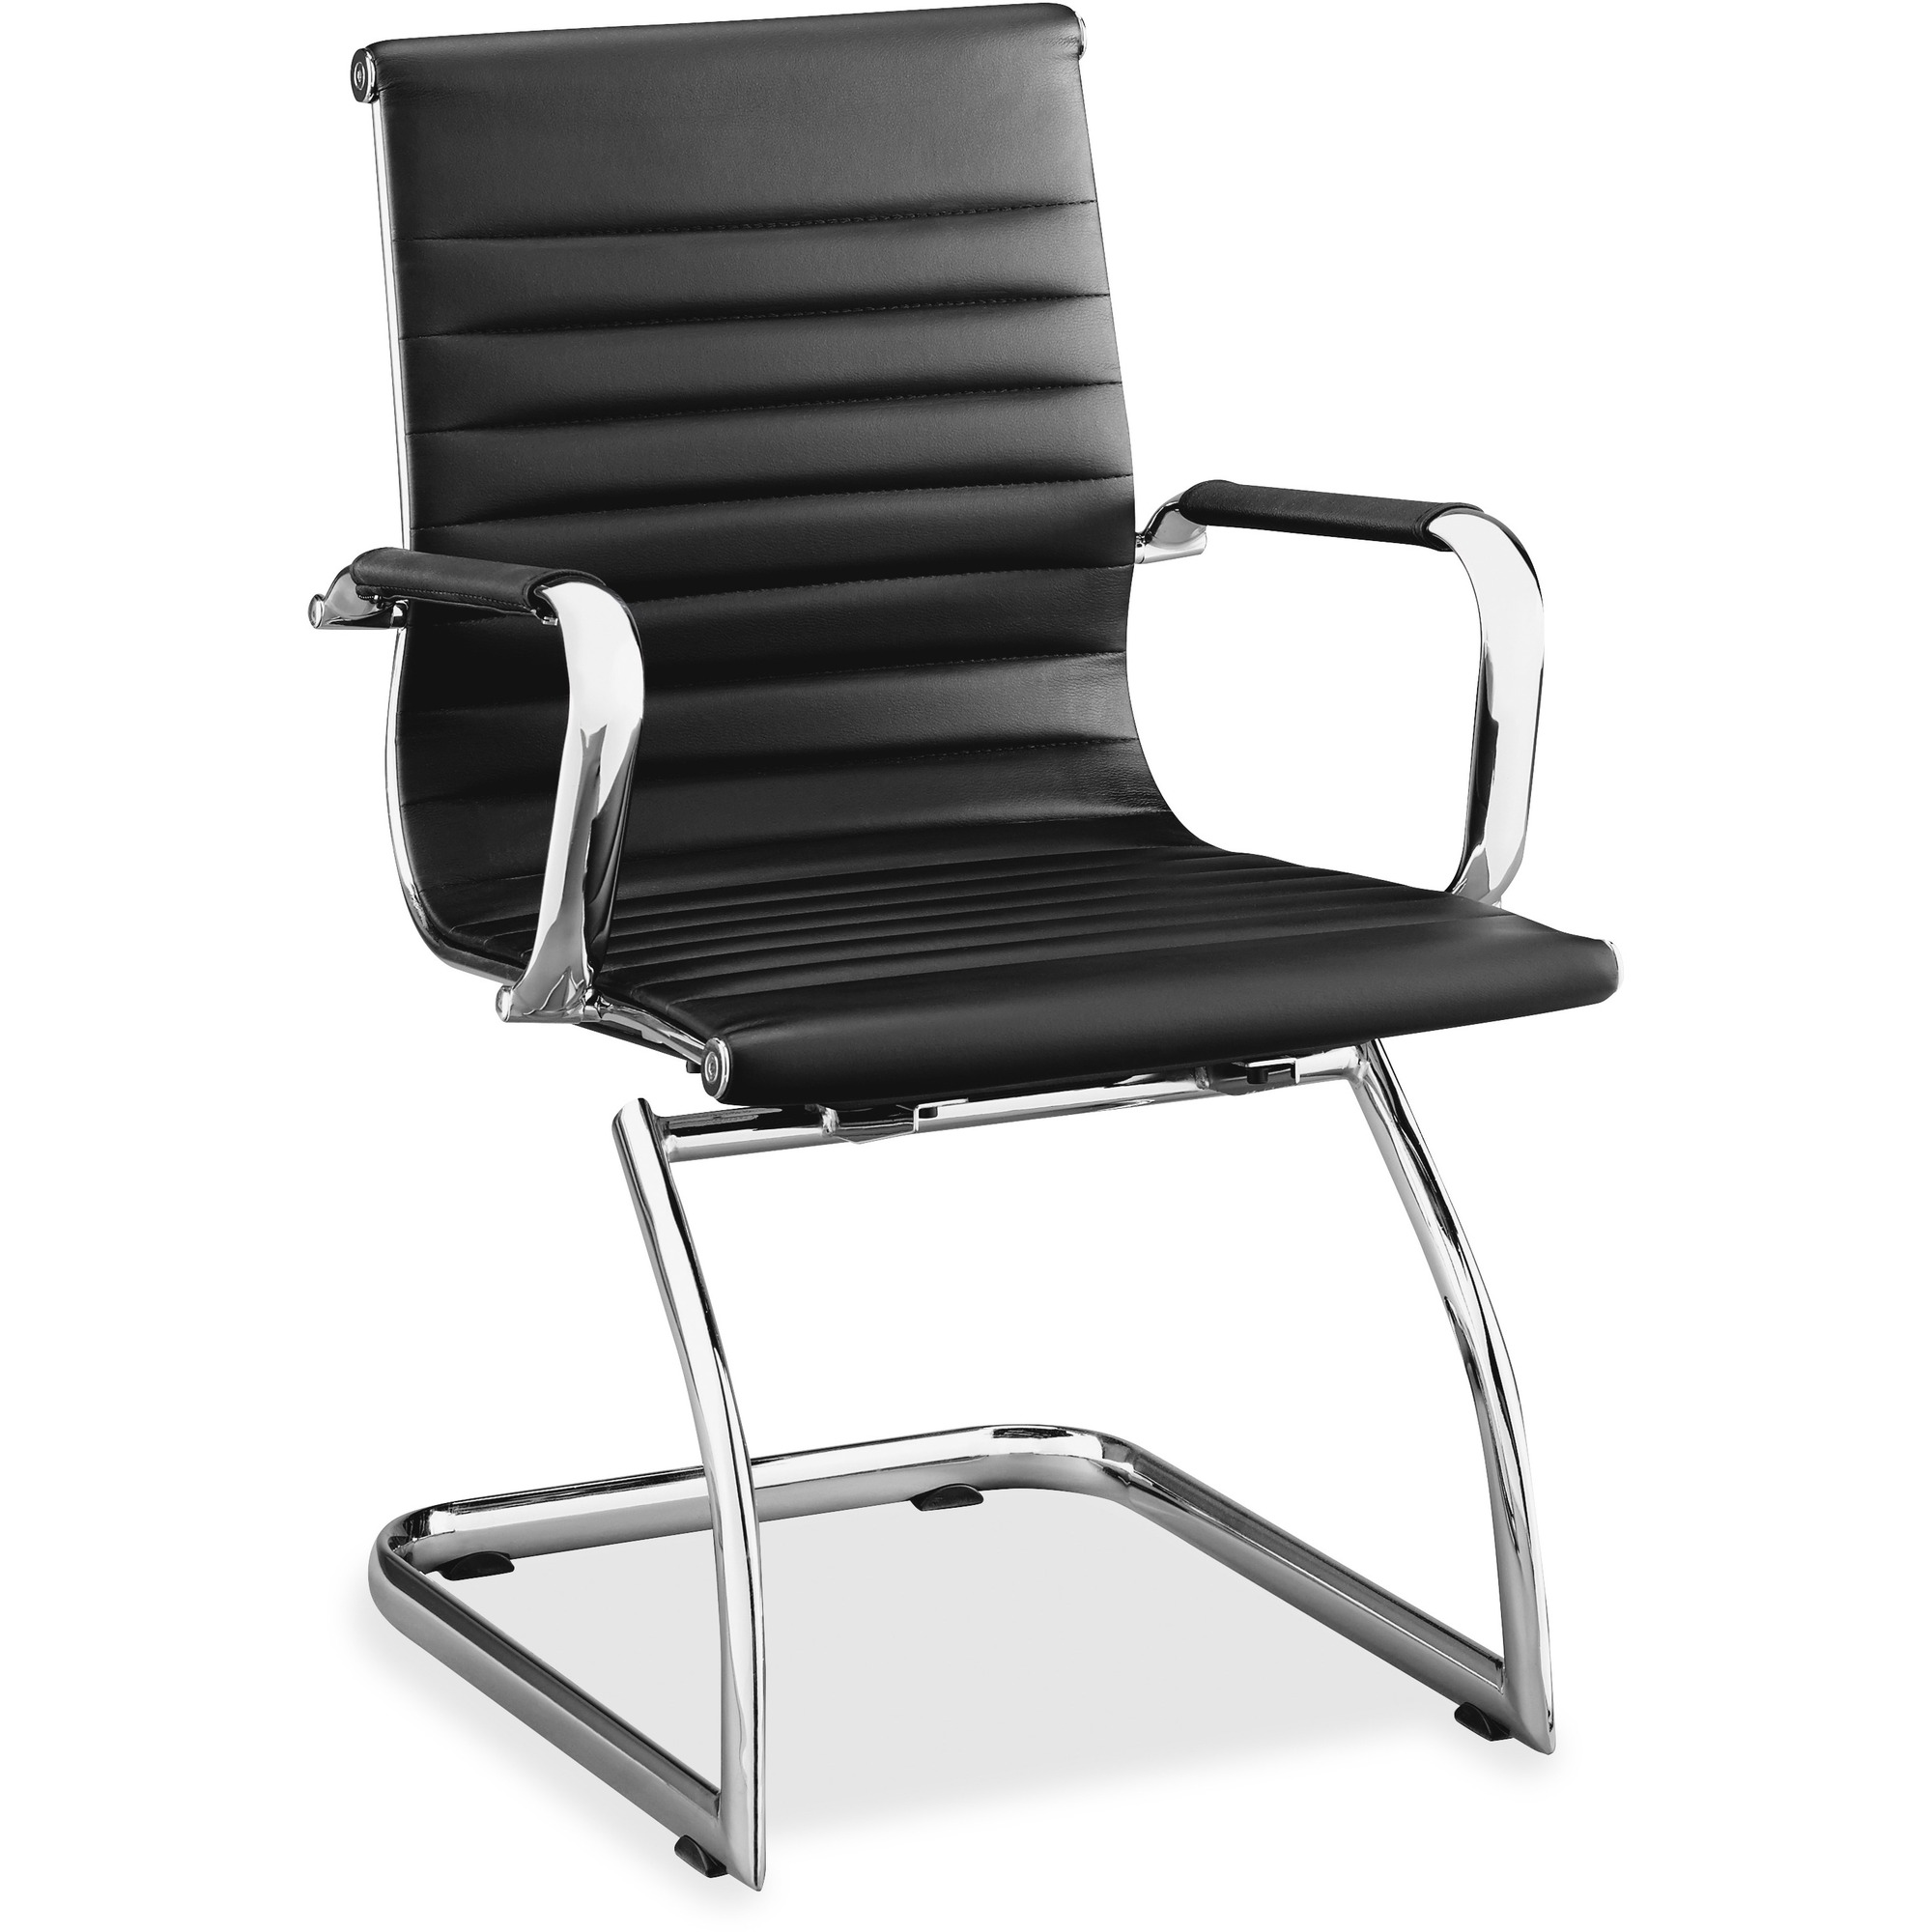 Surprising Lorell Modern Chair Mid Back Leather Guest Chair Leather Seat Leather Back Cantilever Sled Base Black 25 Width X 26 Depth X 38 Height Machost Co Dining Chair Design Ideas Machostcouk